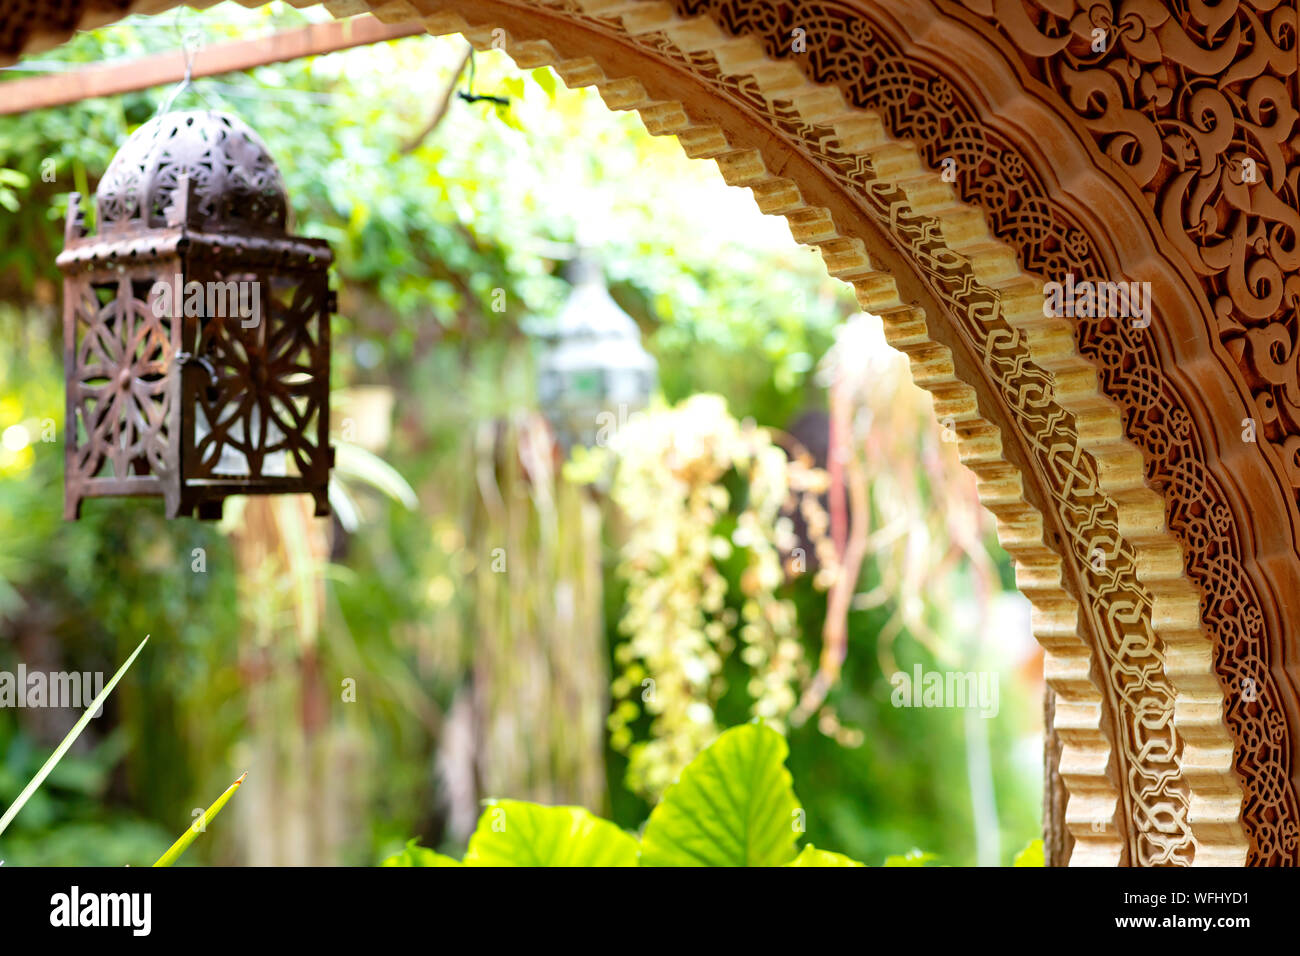 Arch Decorated With Arabic Ornaments With An Interior Green Garden